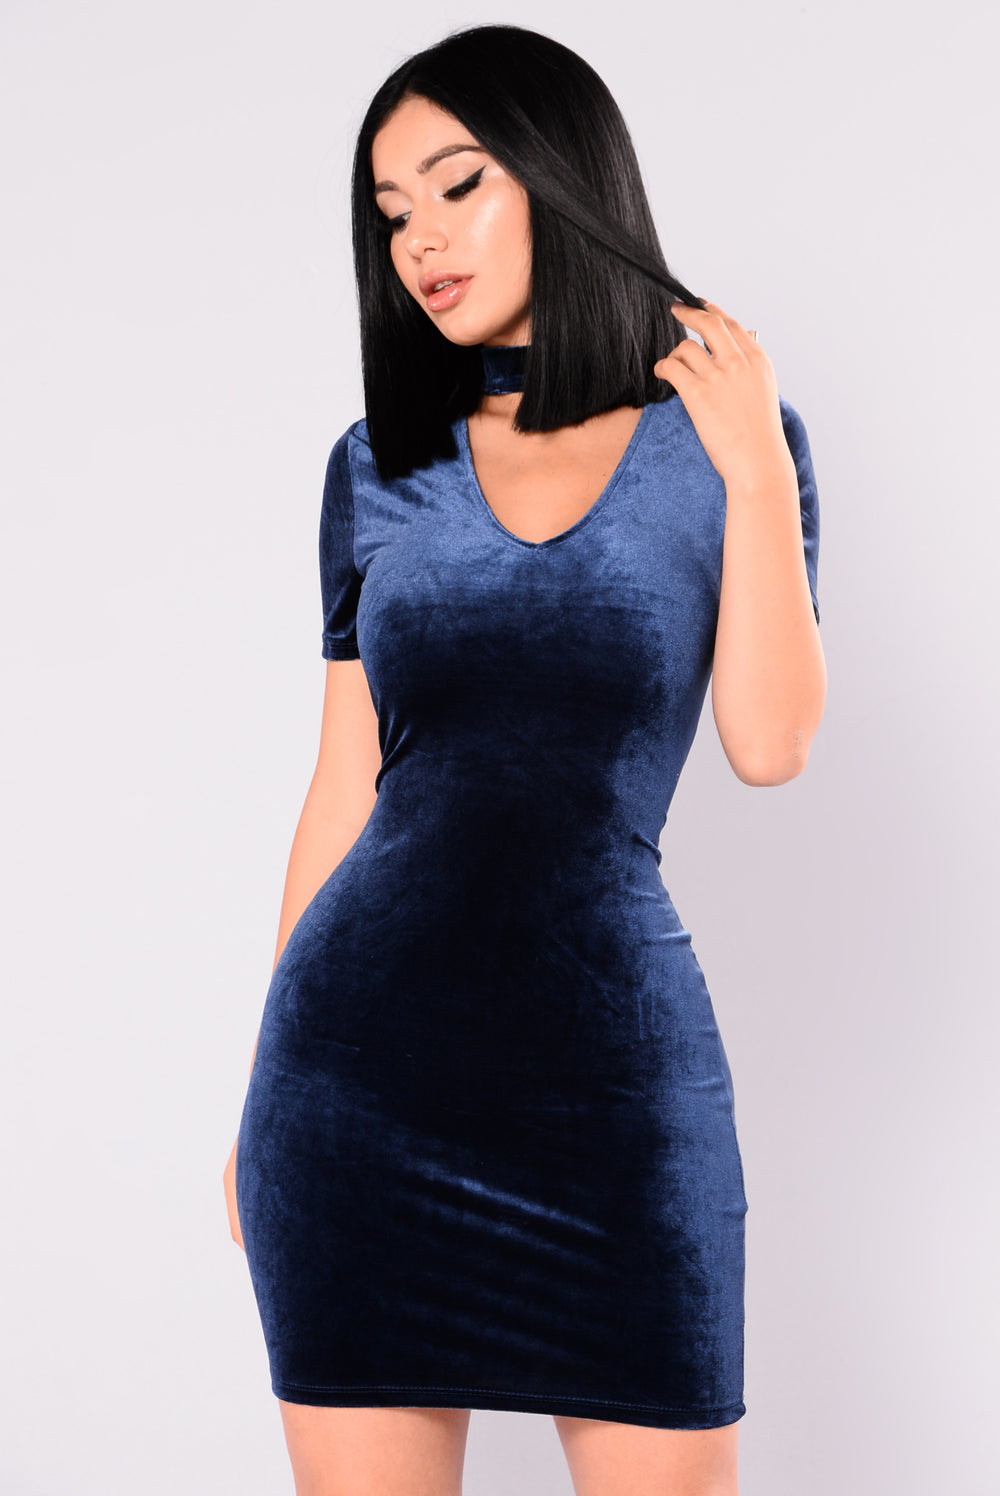 Shawna Velvet Dress - Navy